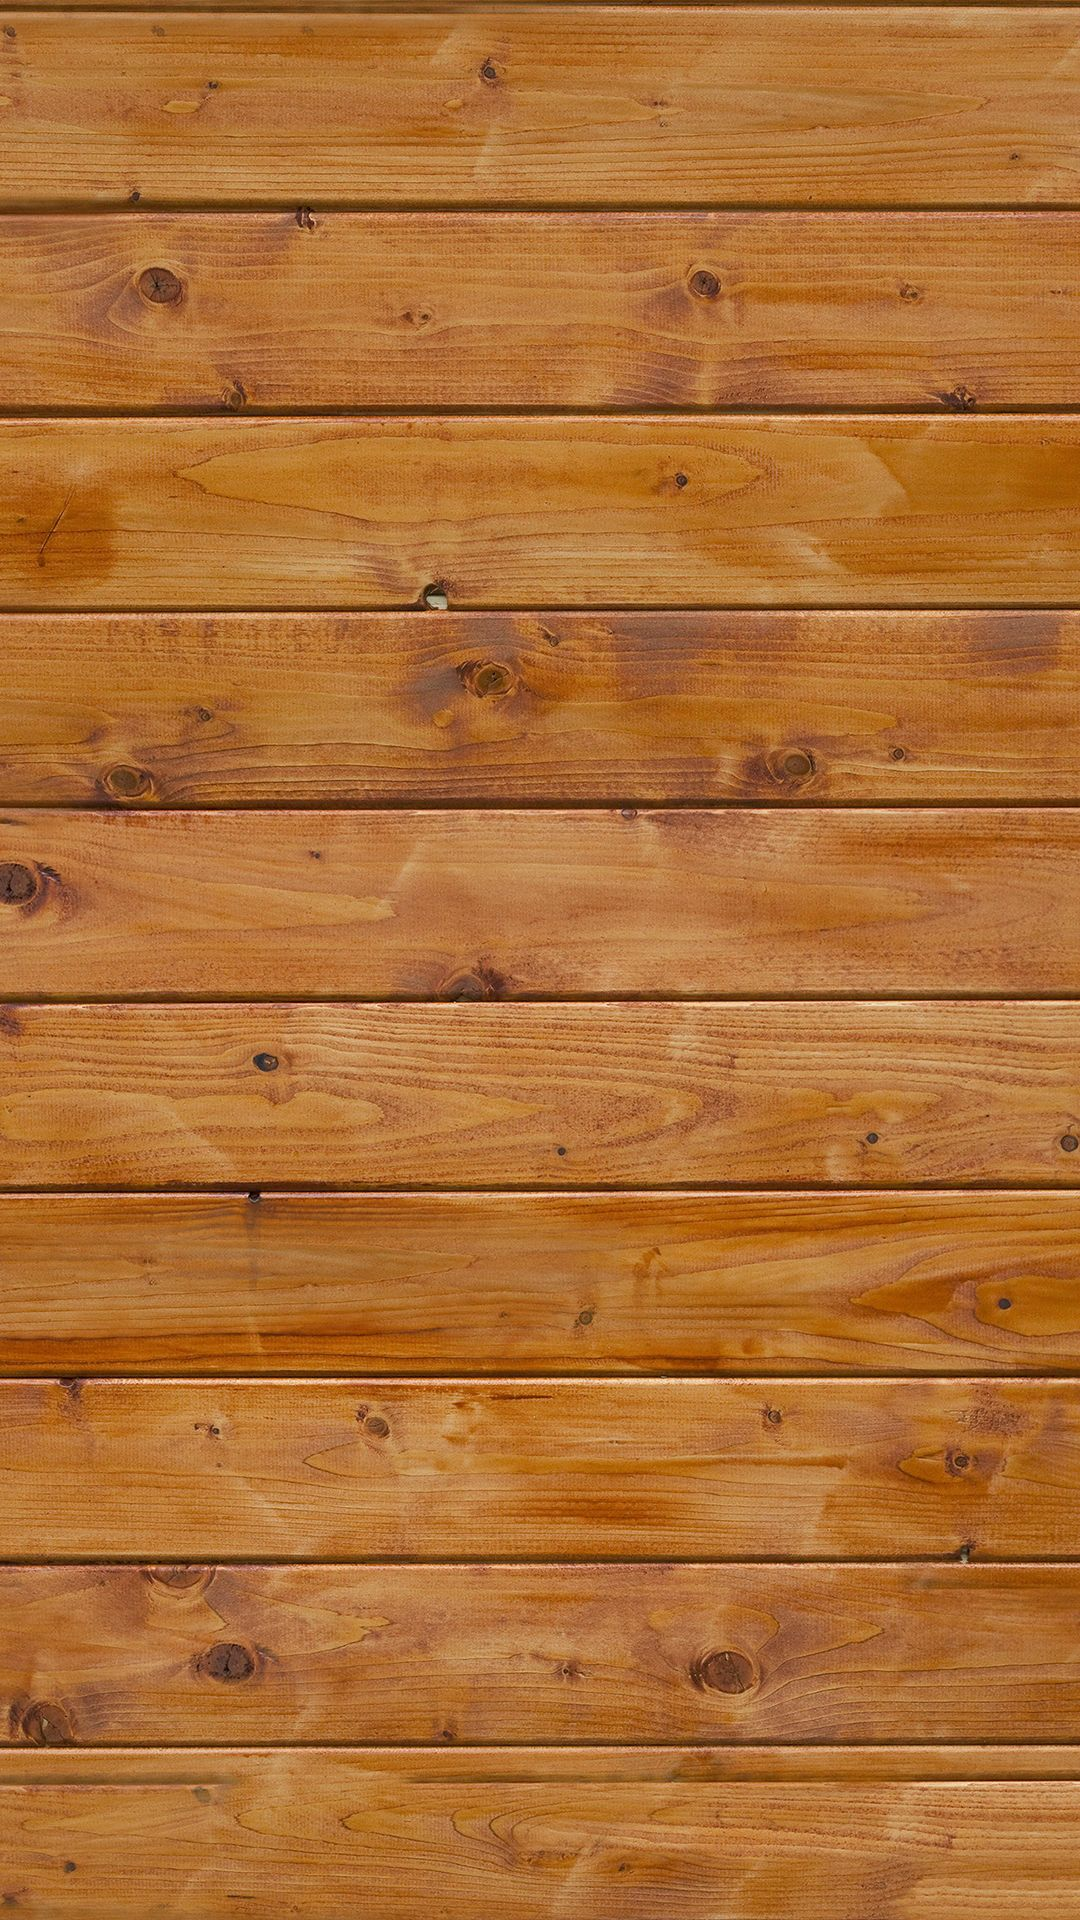 Wood Plank Texture Pattern  iPhone  6  plus  wallpaper. Wood Plank Texture Pattern  iPhone  6  plus  wallpaper   iPhone 6